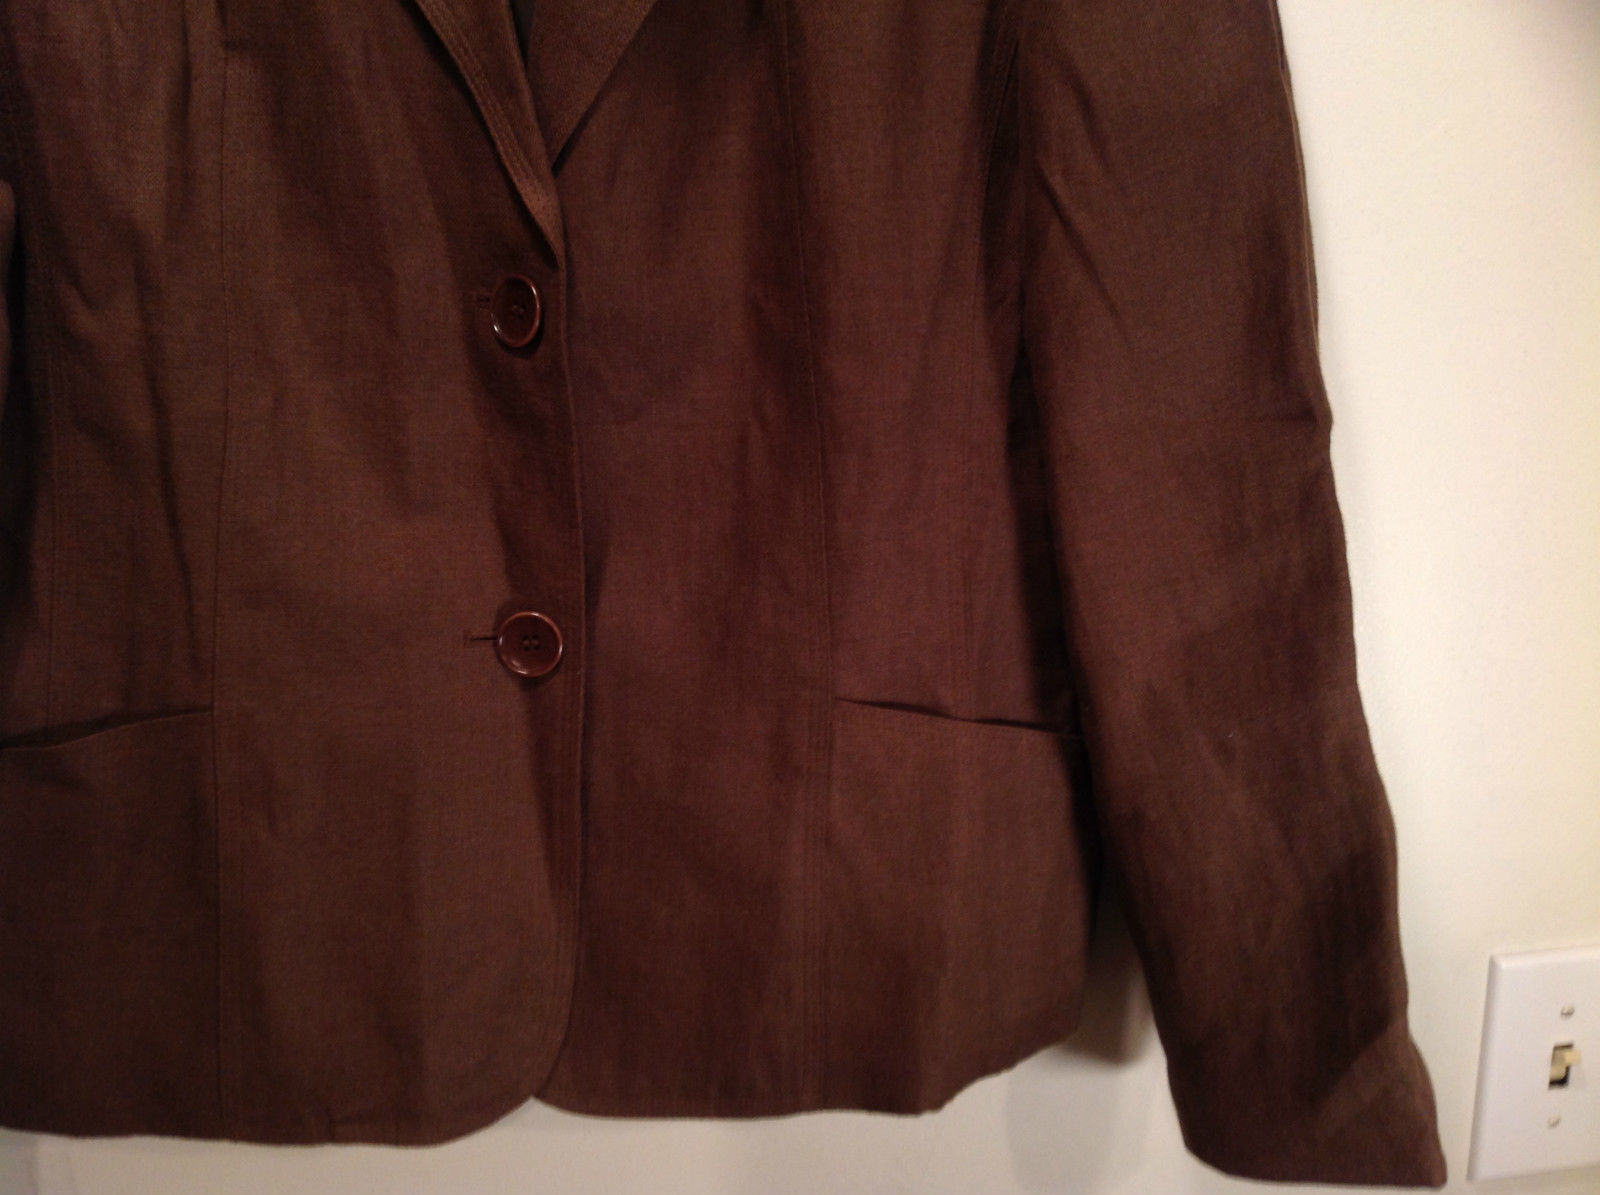 Brown Size 16 Talbots 100 Percent Linen Blazer Two Button Closure Two Pockets image 4